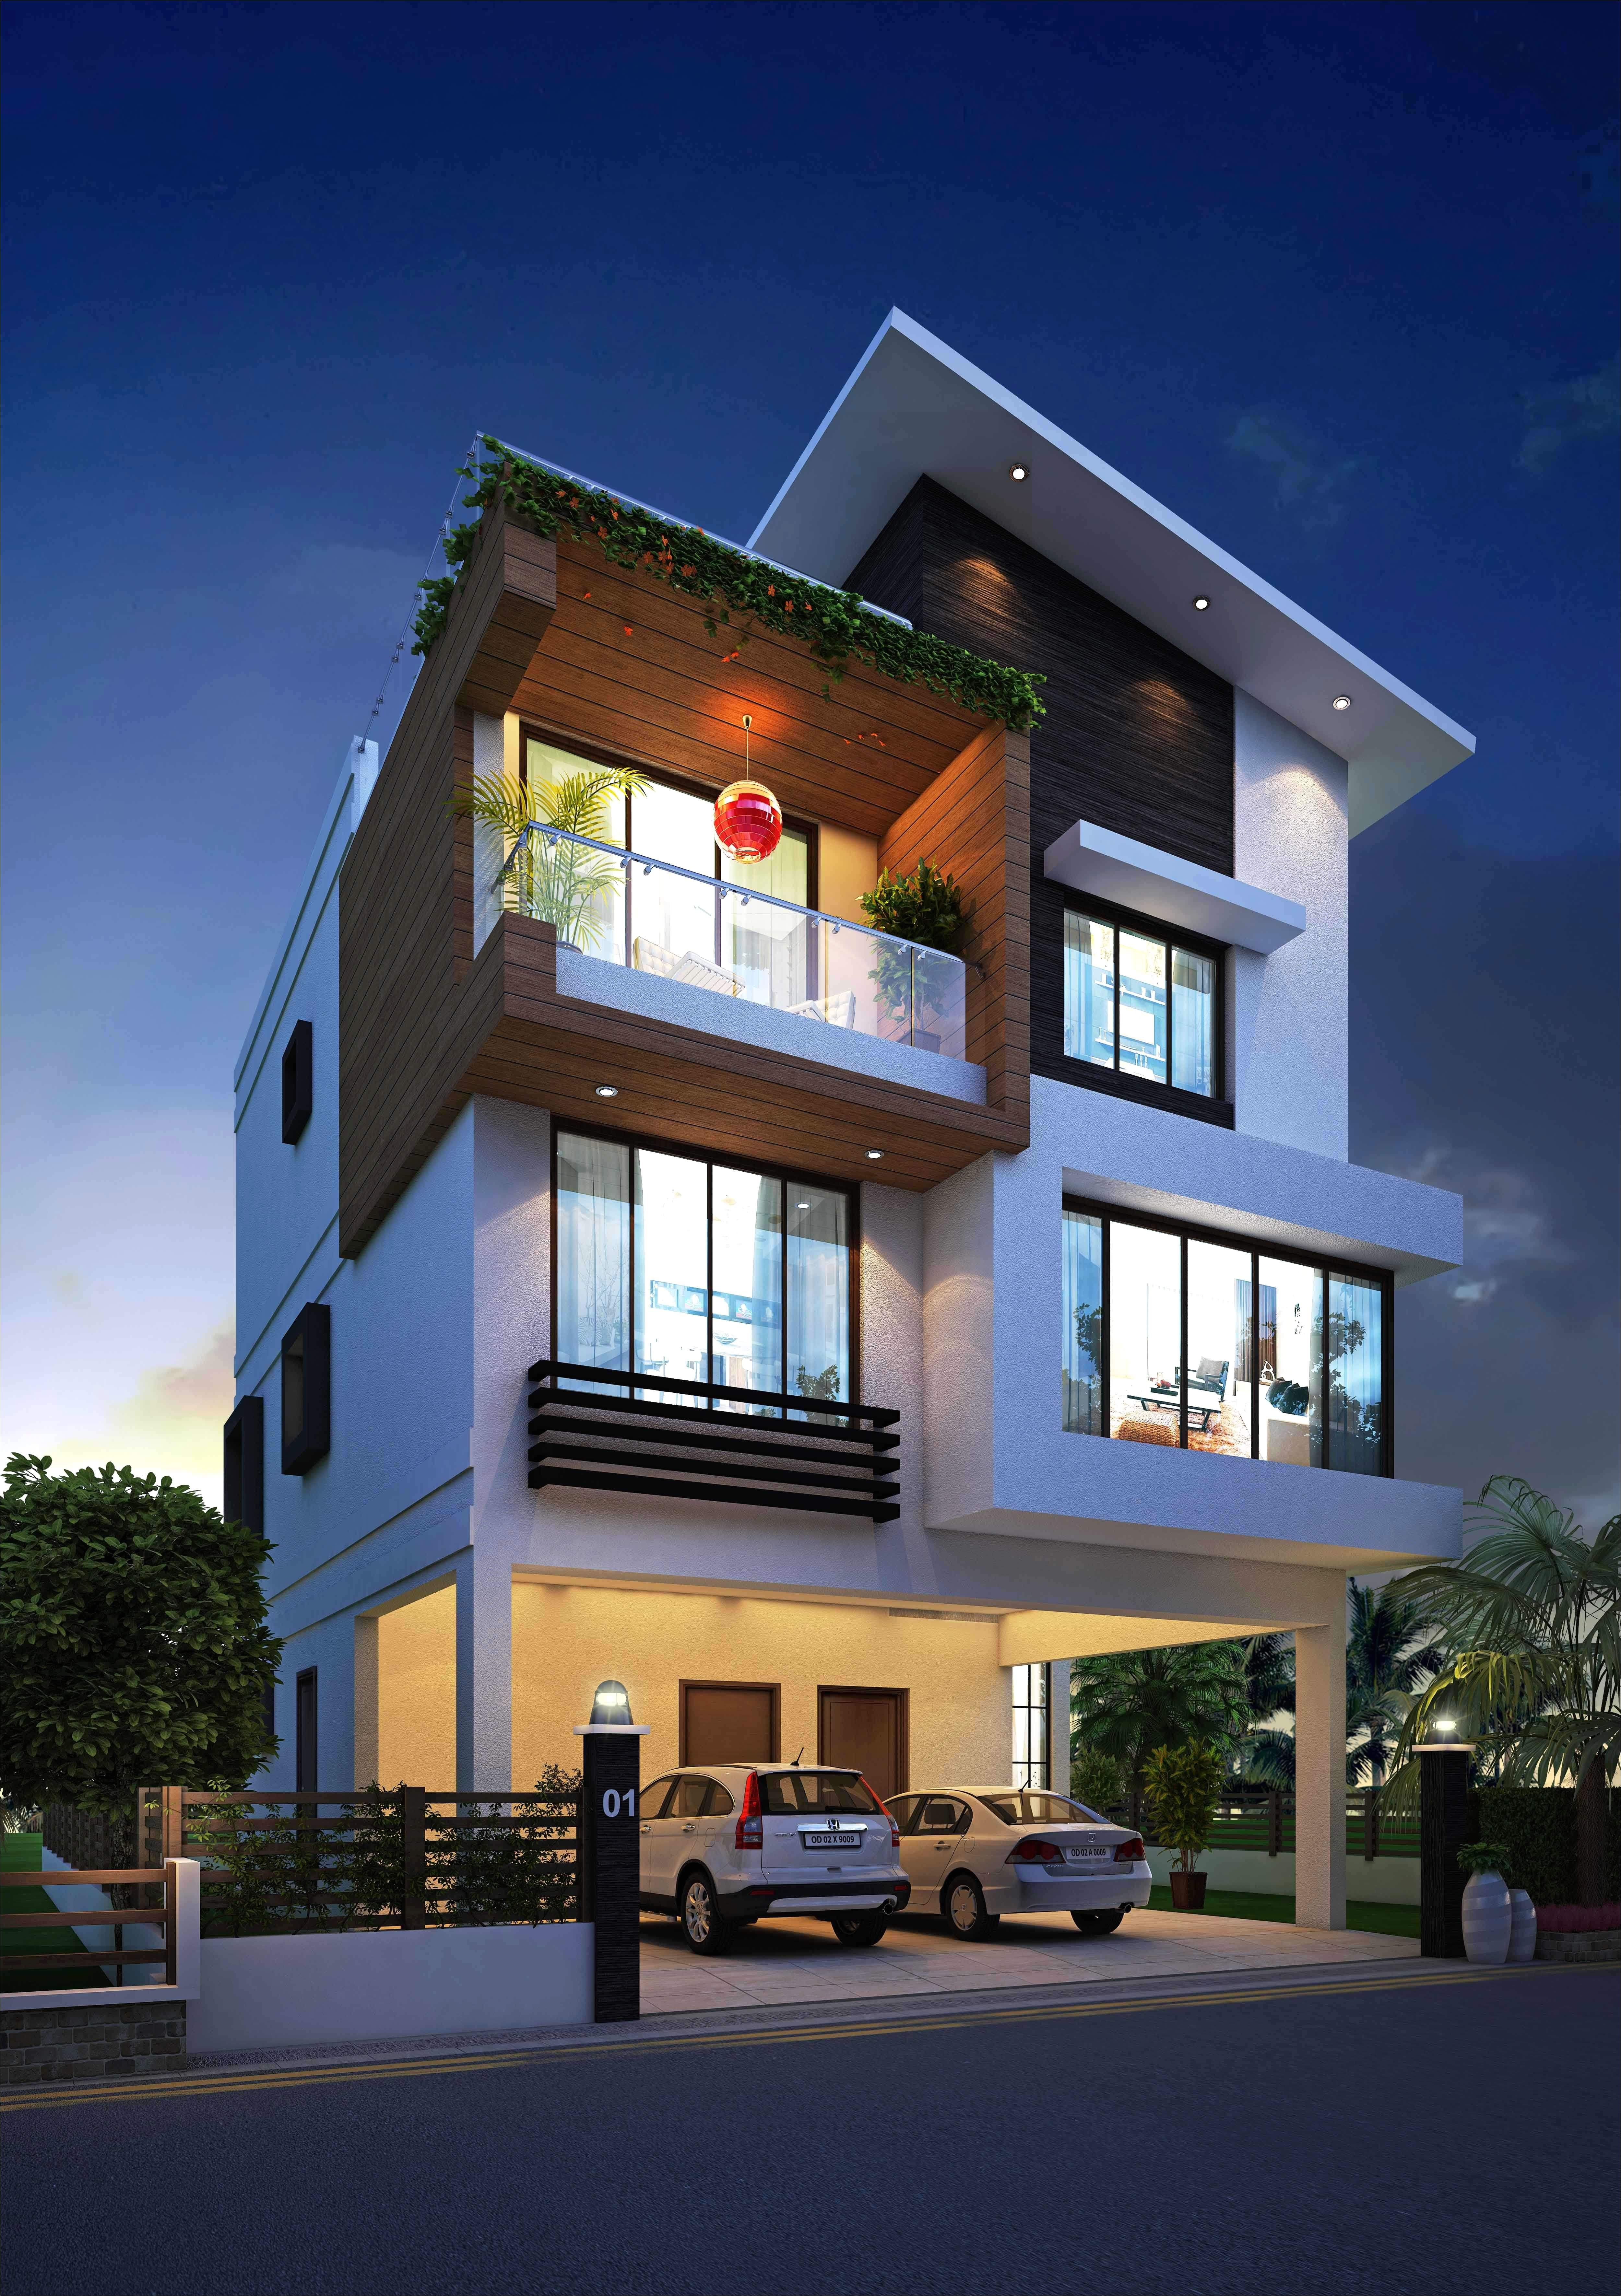 House Plans Under 100k To Build Check More At Https Bradshomefurnishings Com House Plans Un Dream House Exterior Modern House Exterior House Designs Exterior